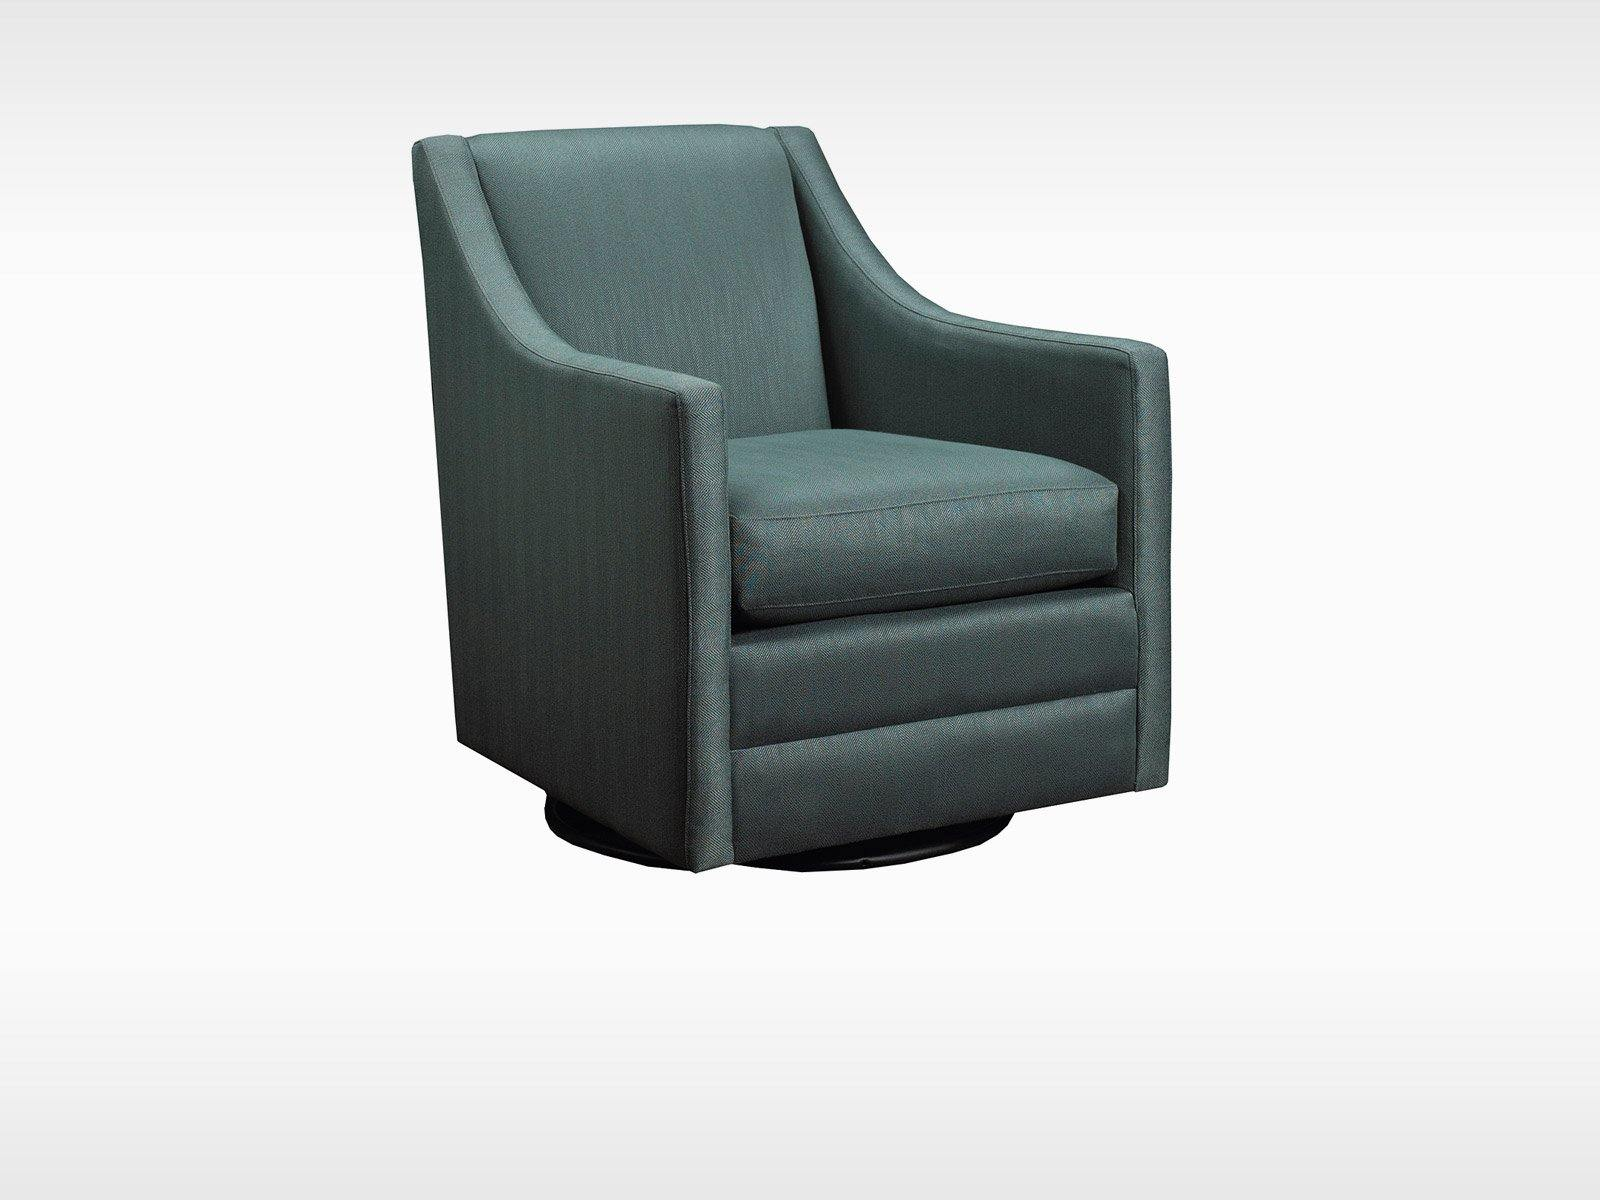 Glen Swivel Chair-Palma-Brava